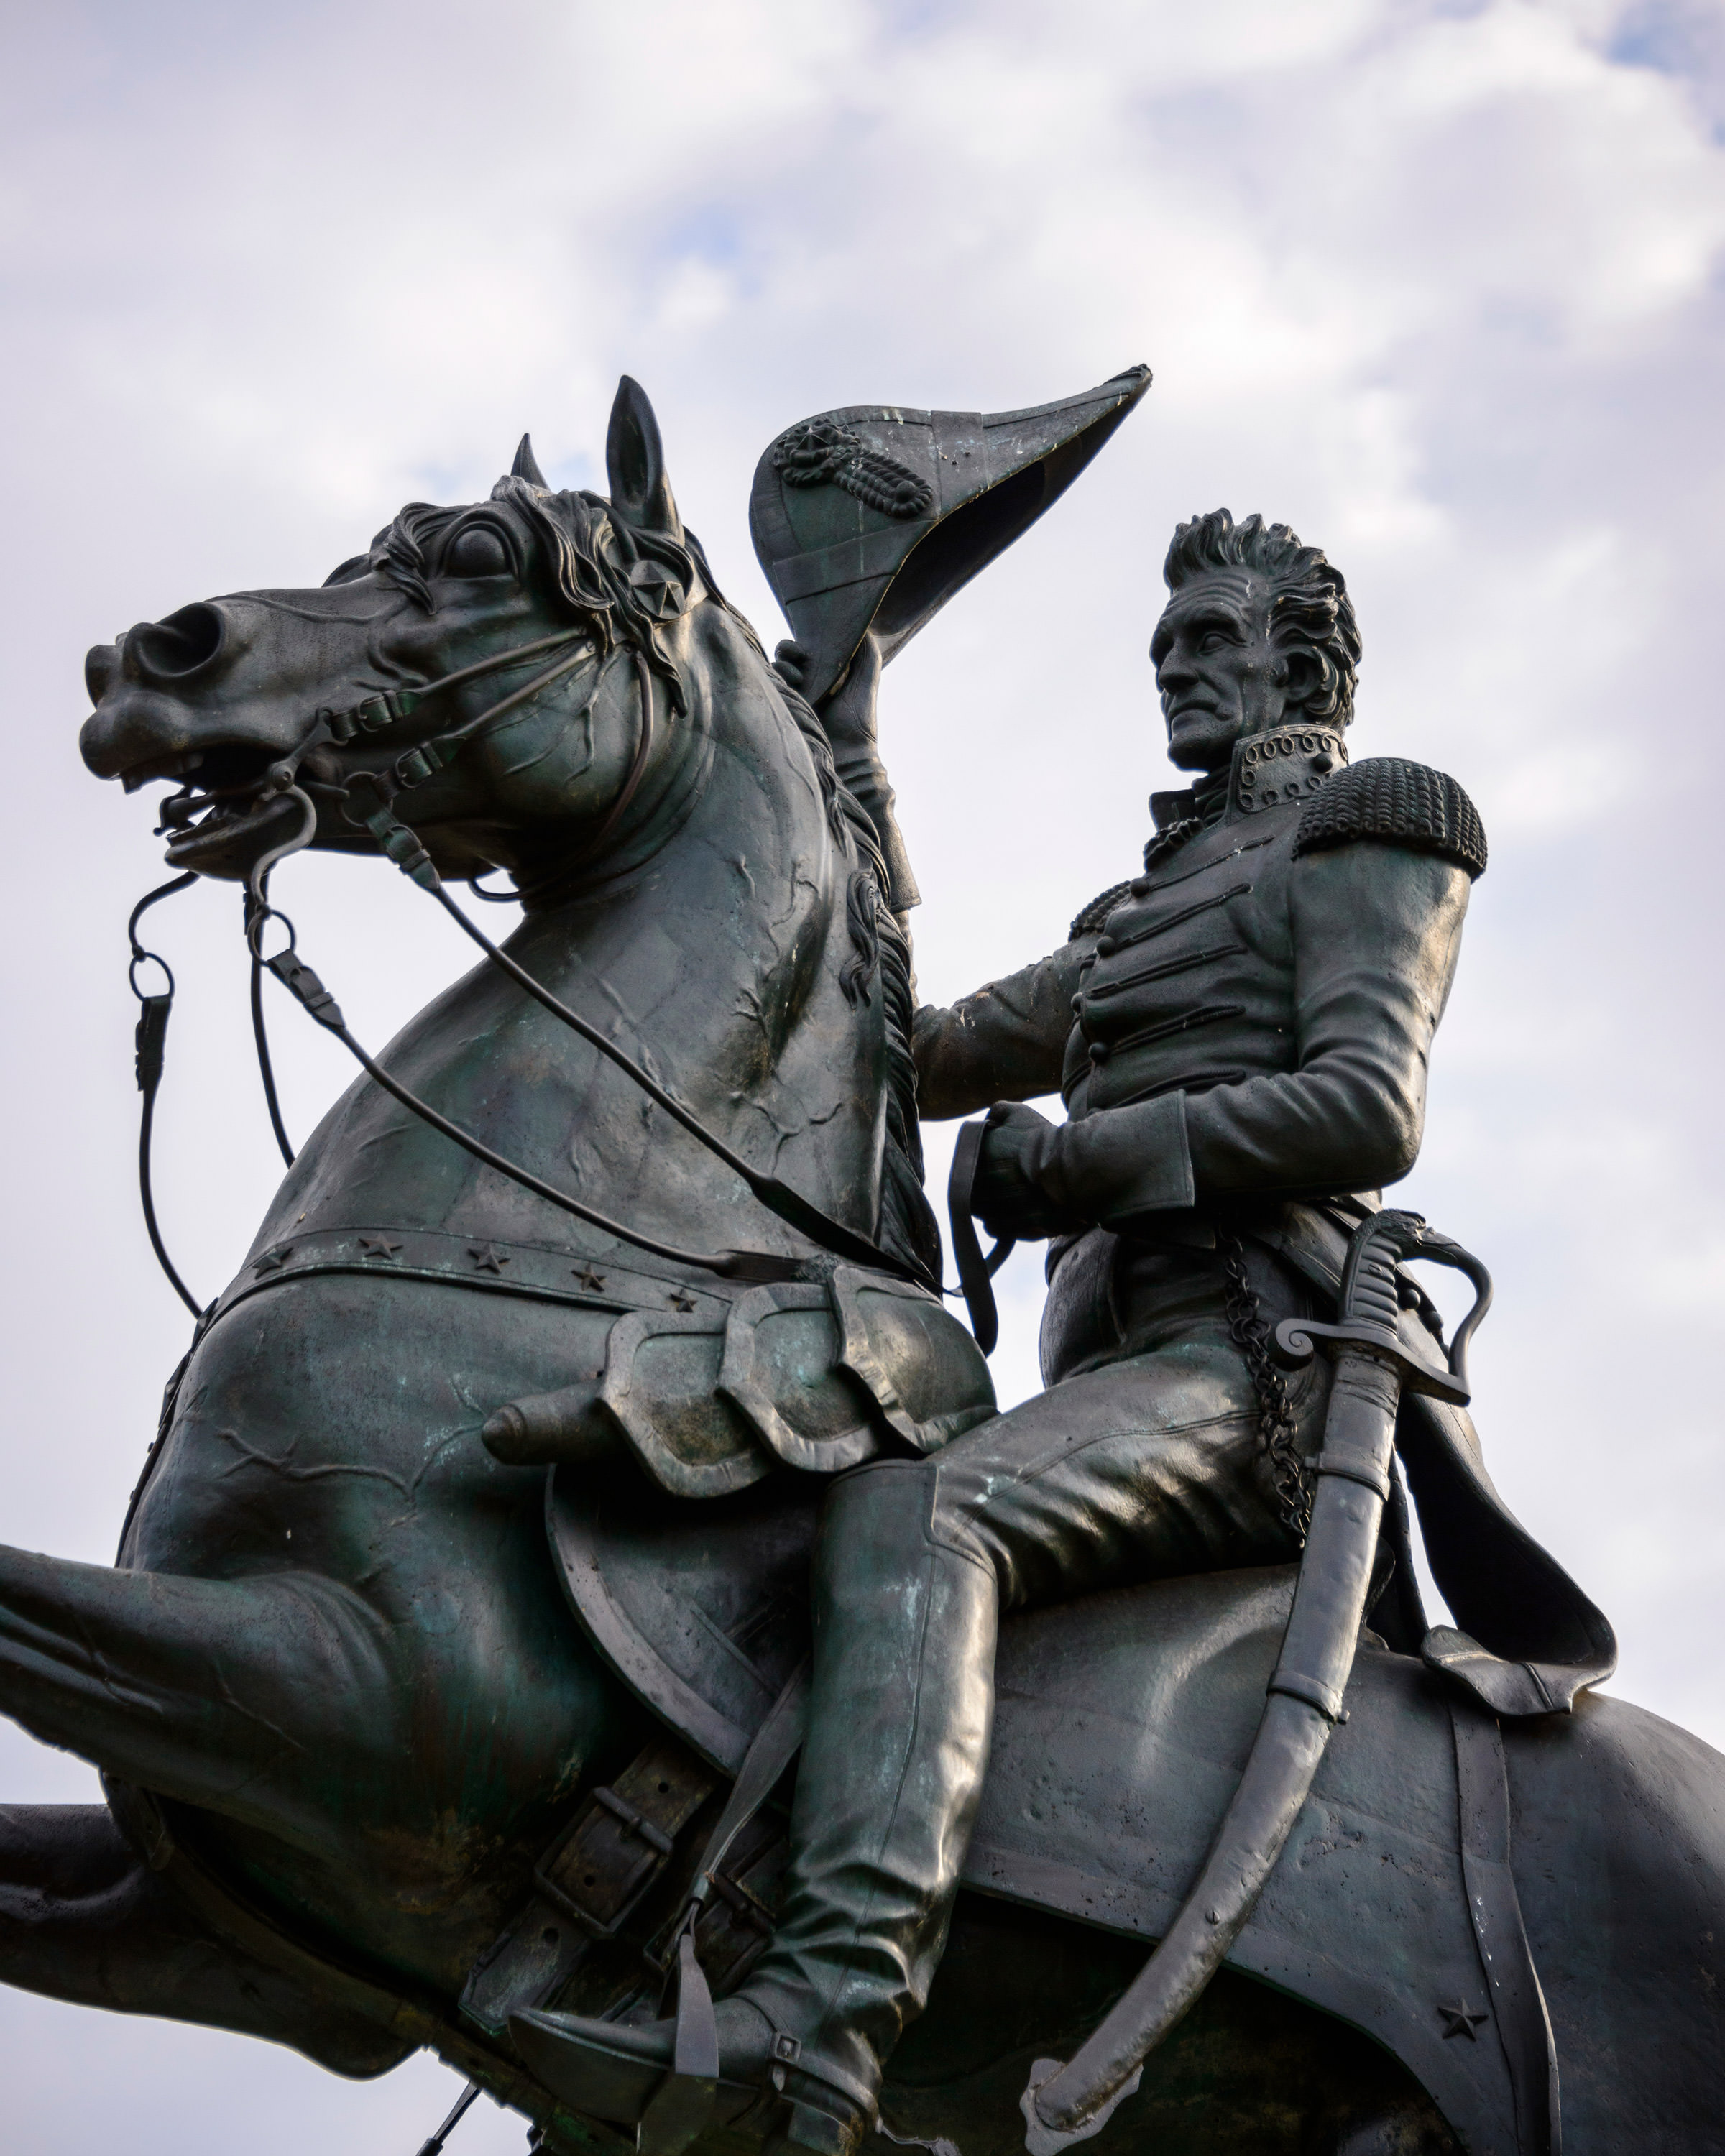 This statue of Andrew Jackson is in front of the White House.